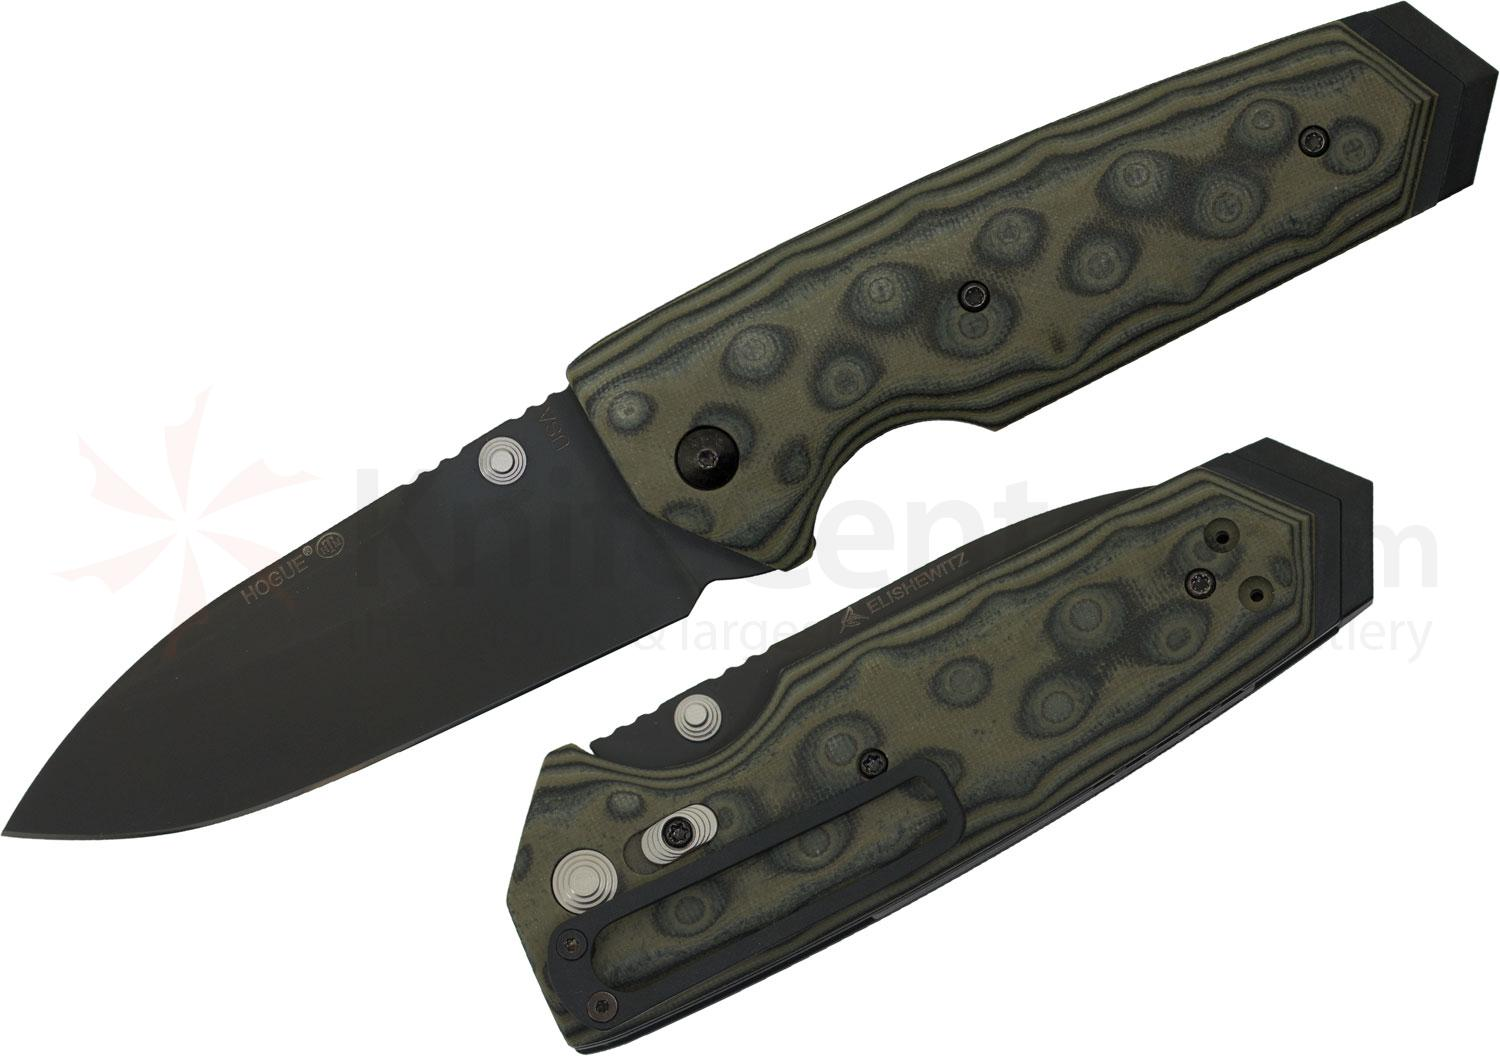 Hogue EX02 3.75 inch Tactical Spear Point Blade with G-Mascus Green G-10 Handles